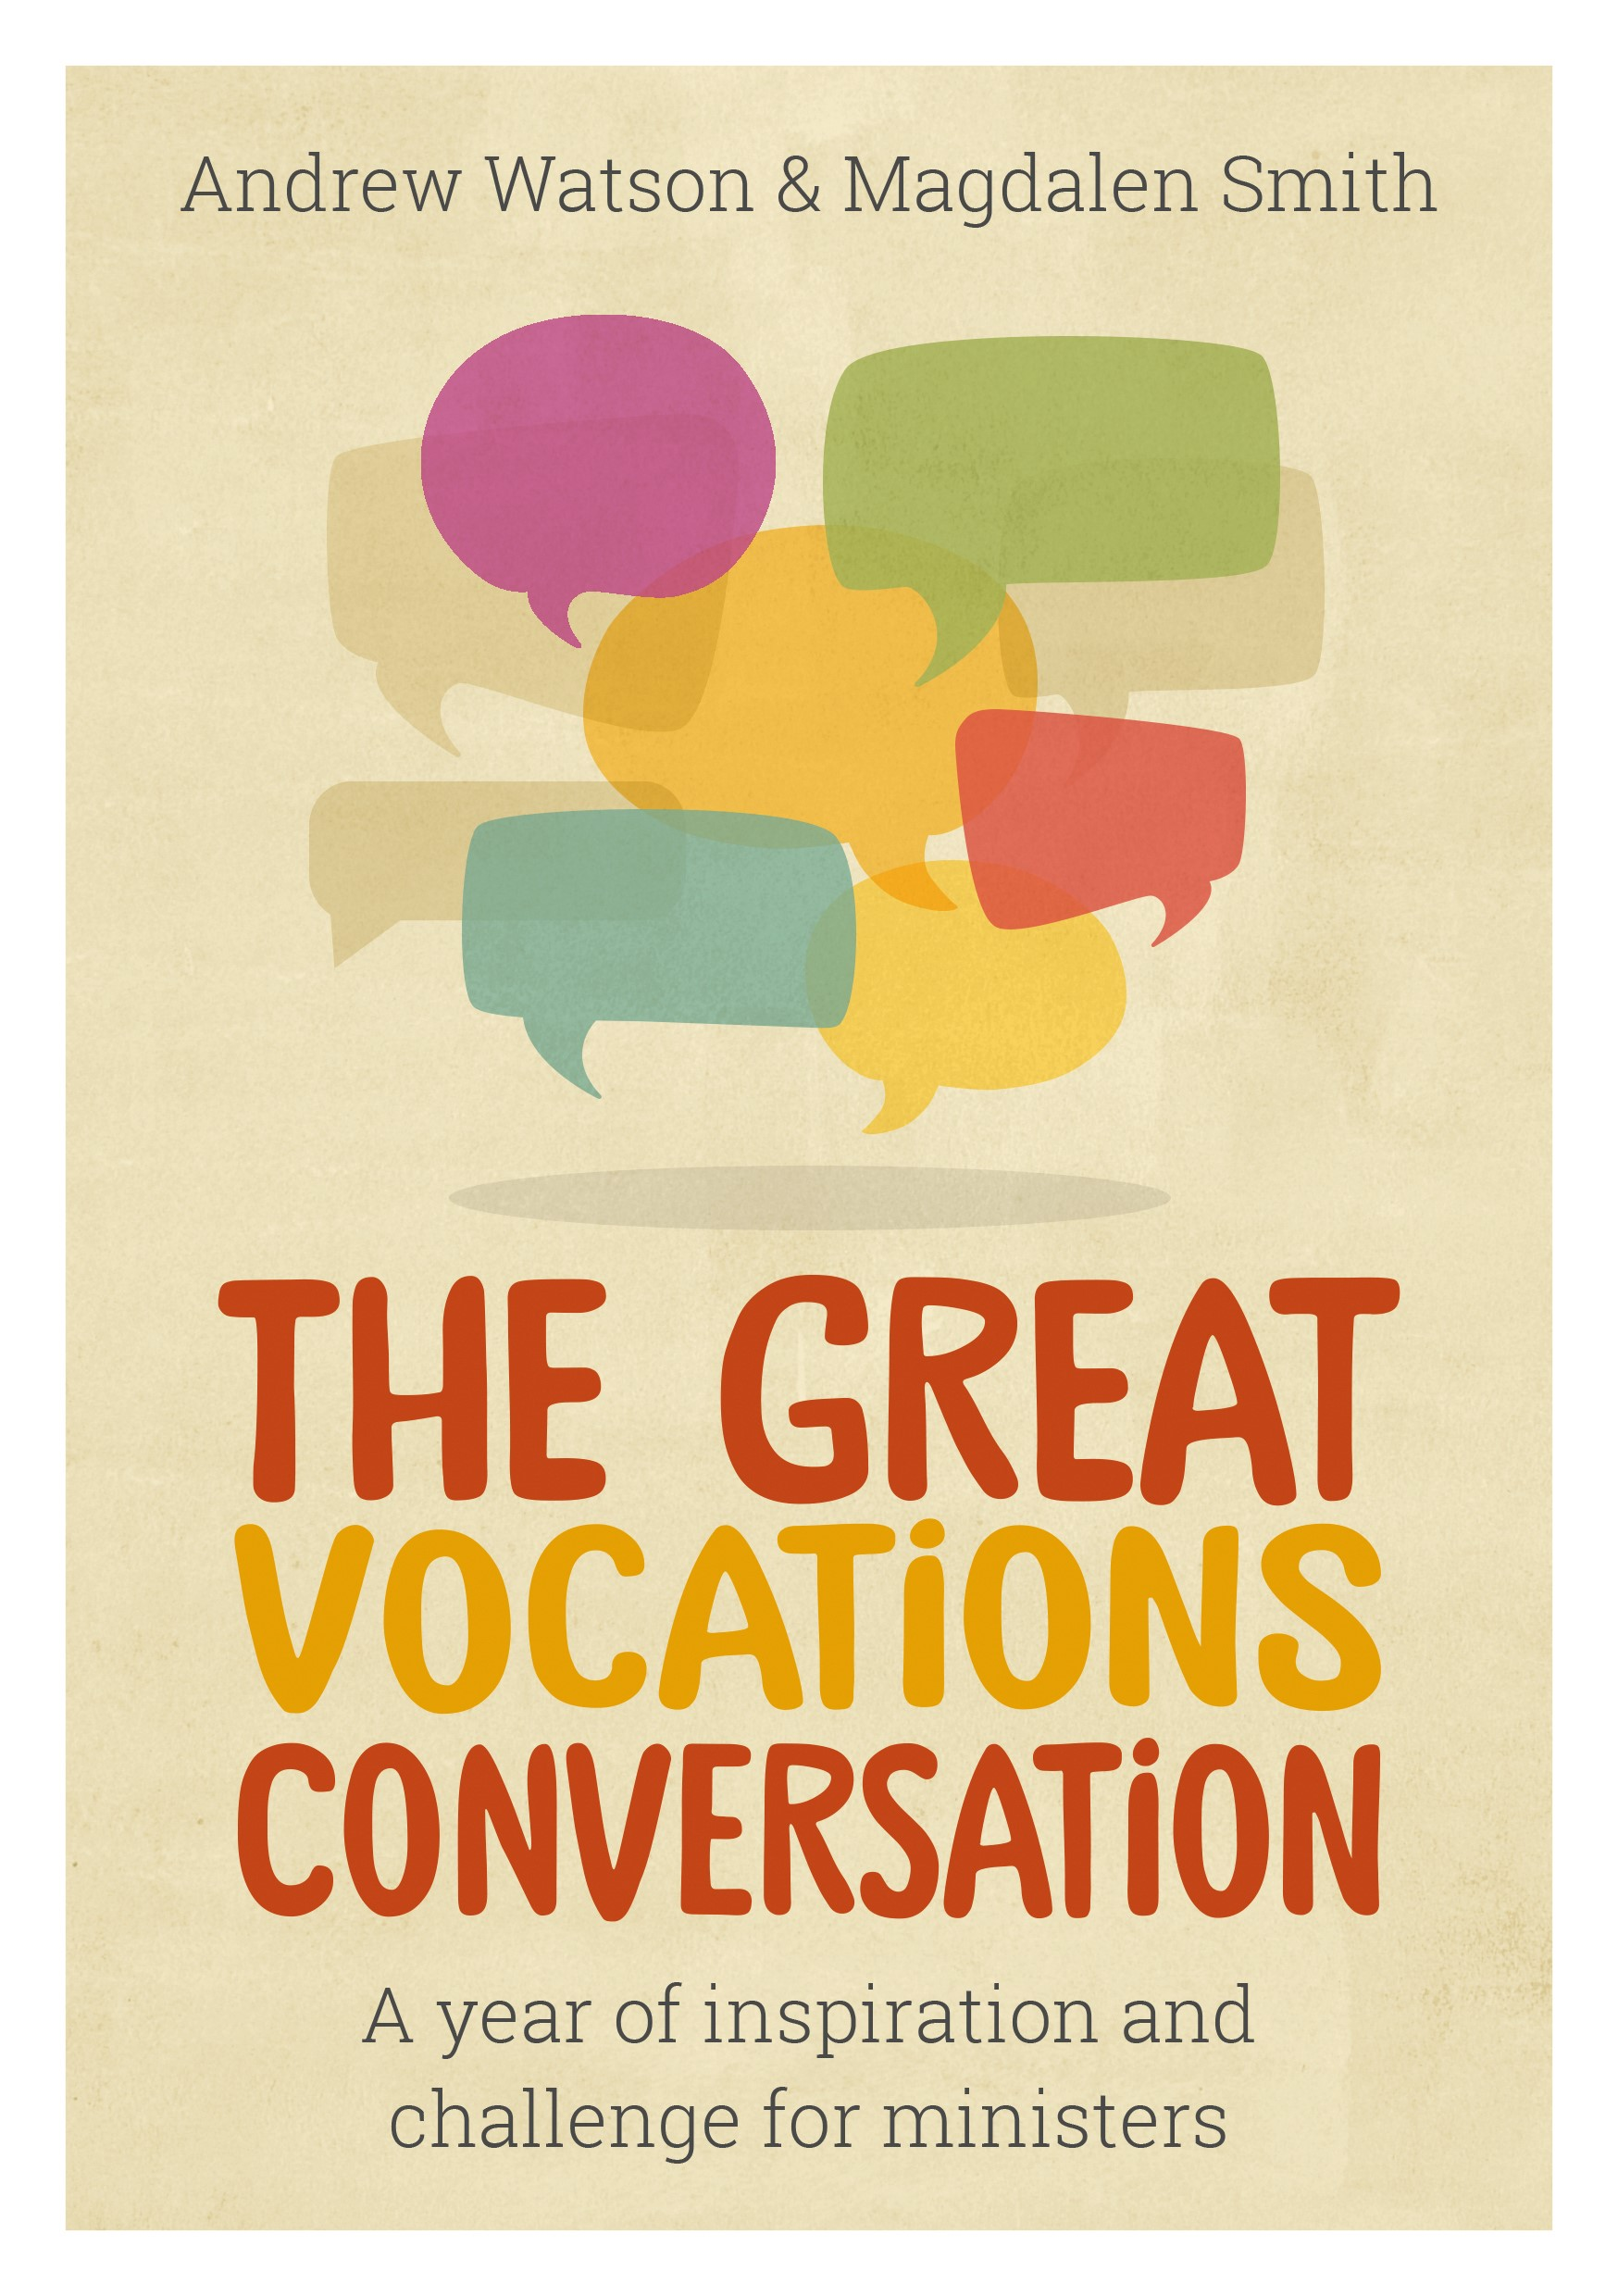 Book cover for the Great Vocations Conversation by Andrew Watson and Magdalen Smith. A year of inspiration and challenge for ministers.